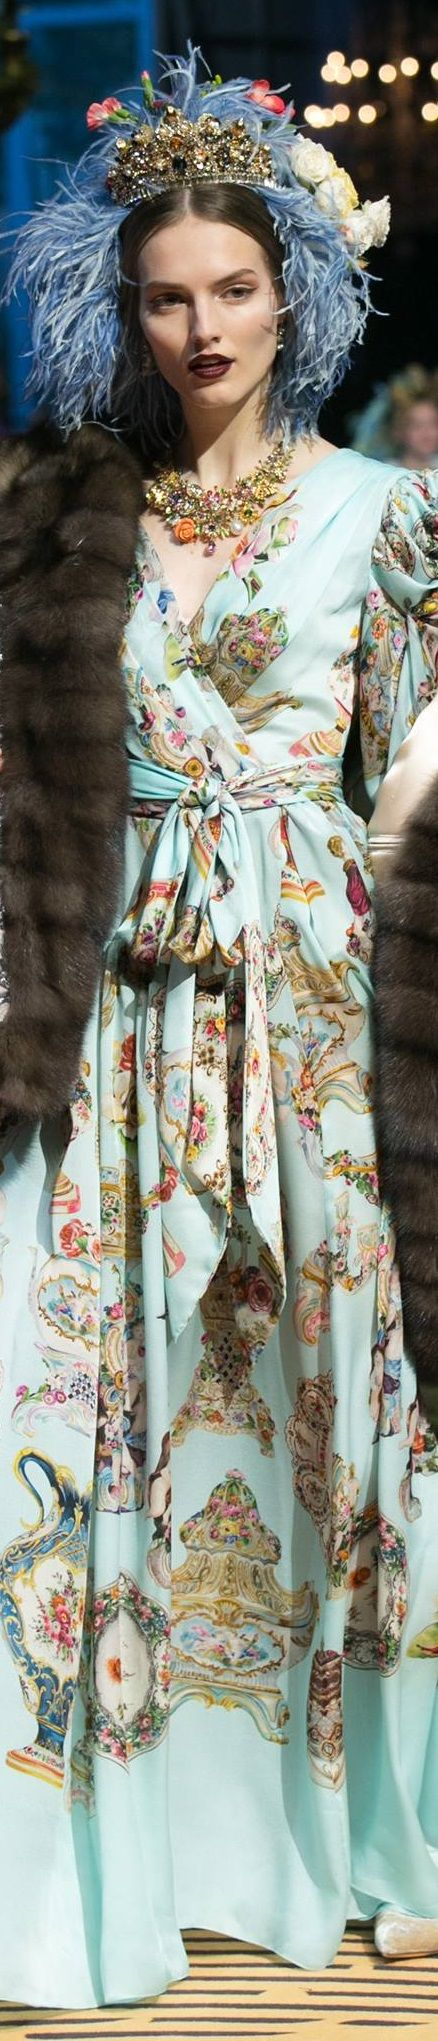 I dislike the fur and the encrusted jewelry but...It's pretty. Dolce and Gabbana Spring 2017 Alta Moda